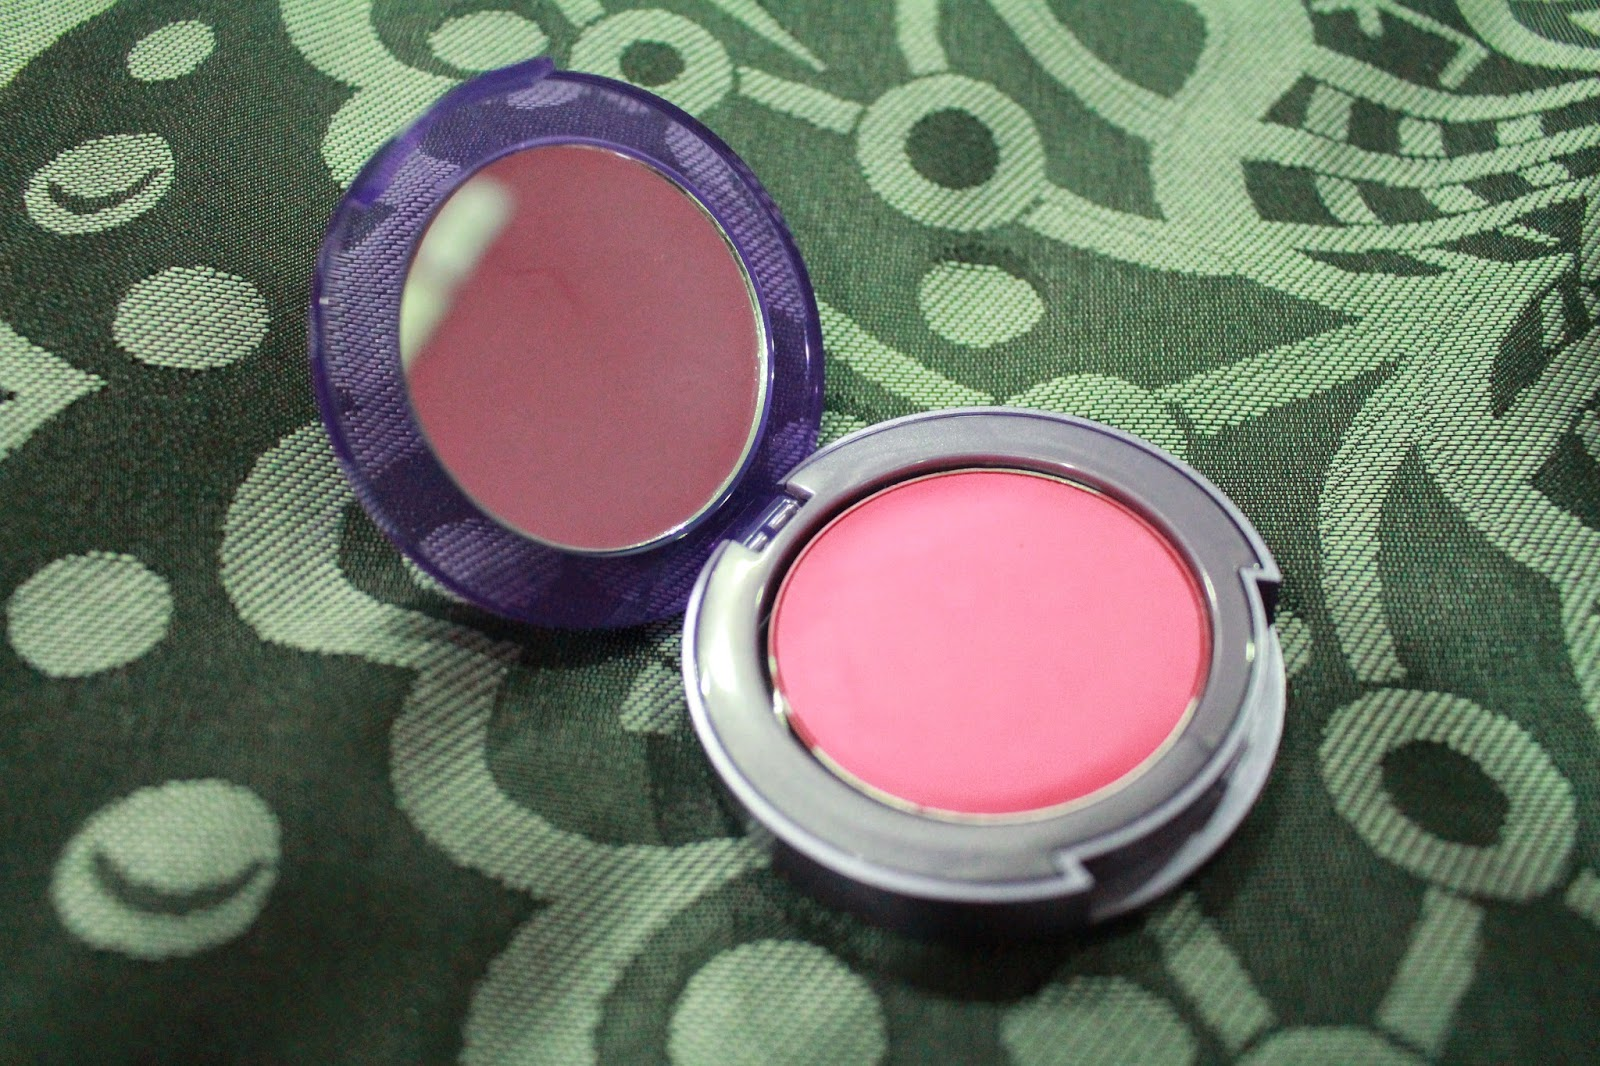 Urban Decay Afterglow Glide On Cheek Tint in Crush